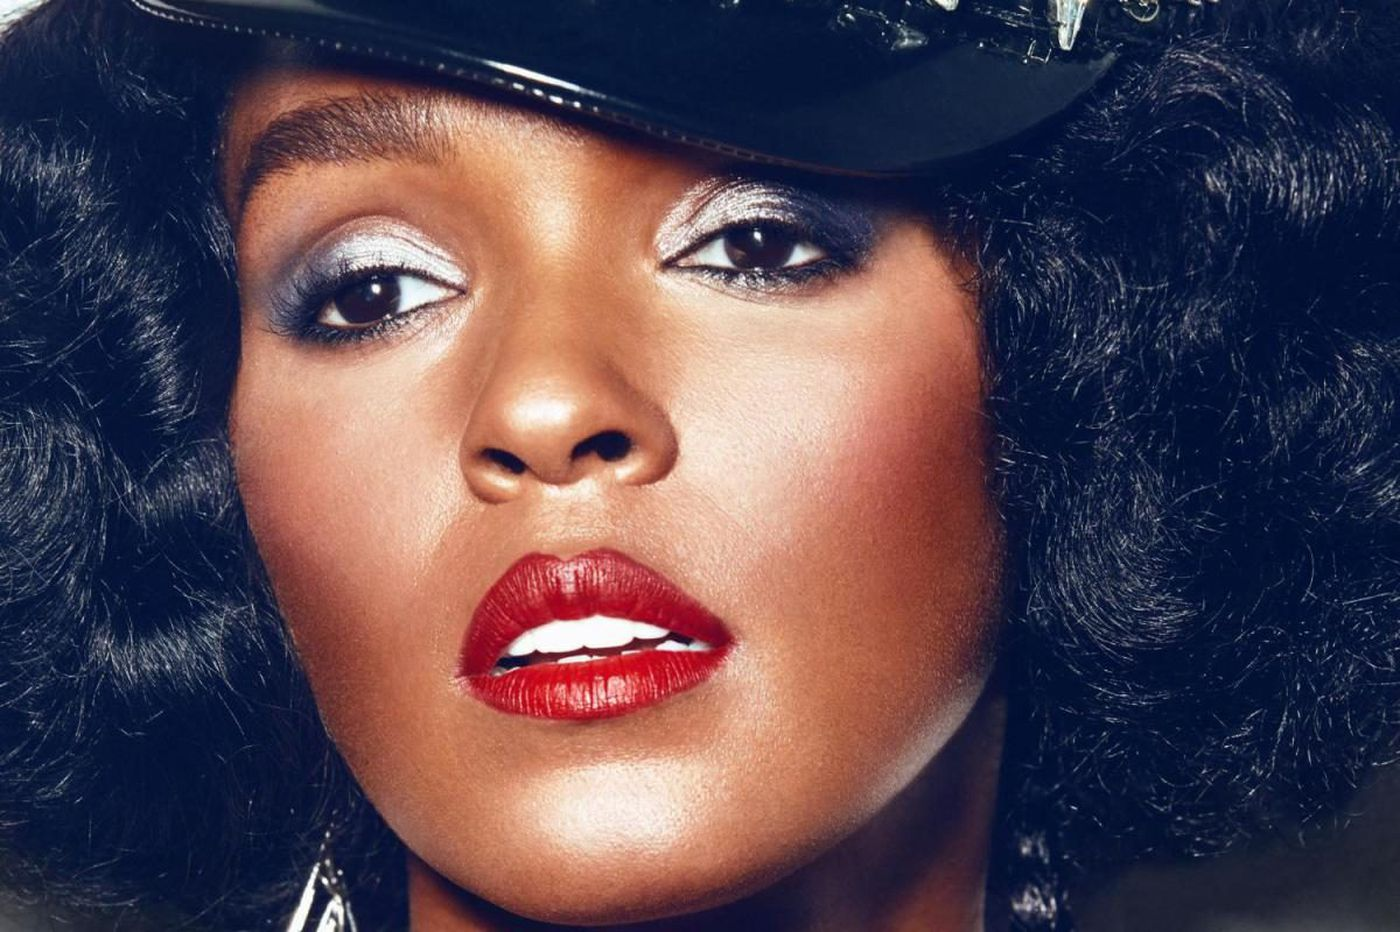 'I'm not America's nightmare, I'm the American dream': Janelle Monáe's new kind of protest song